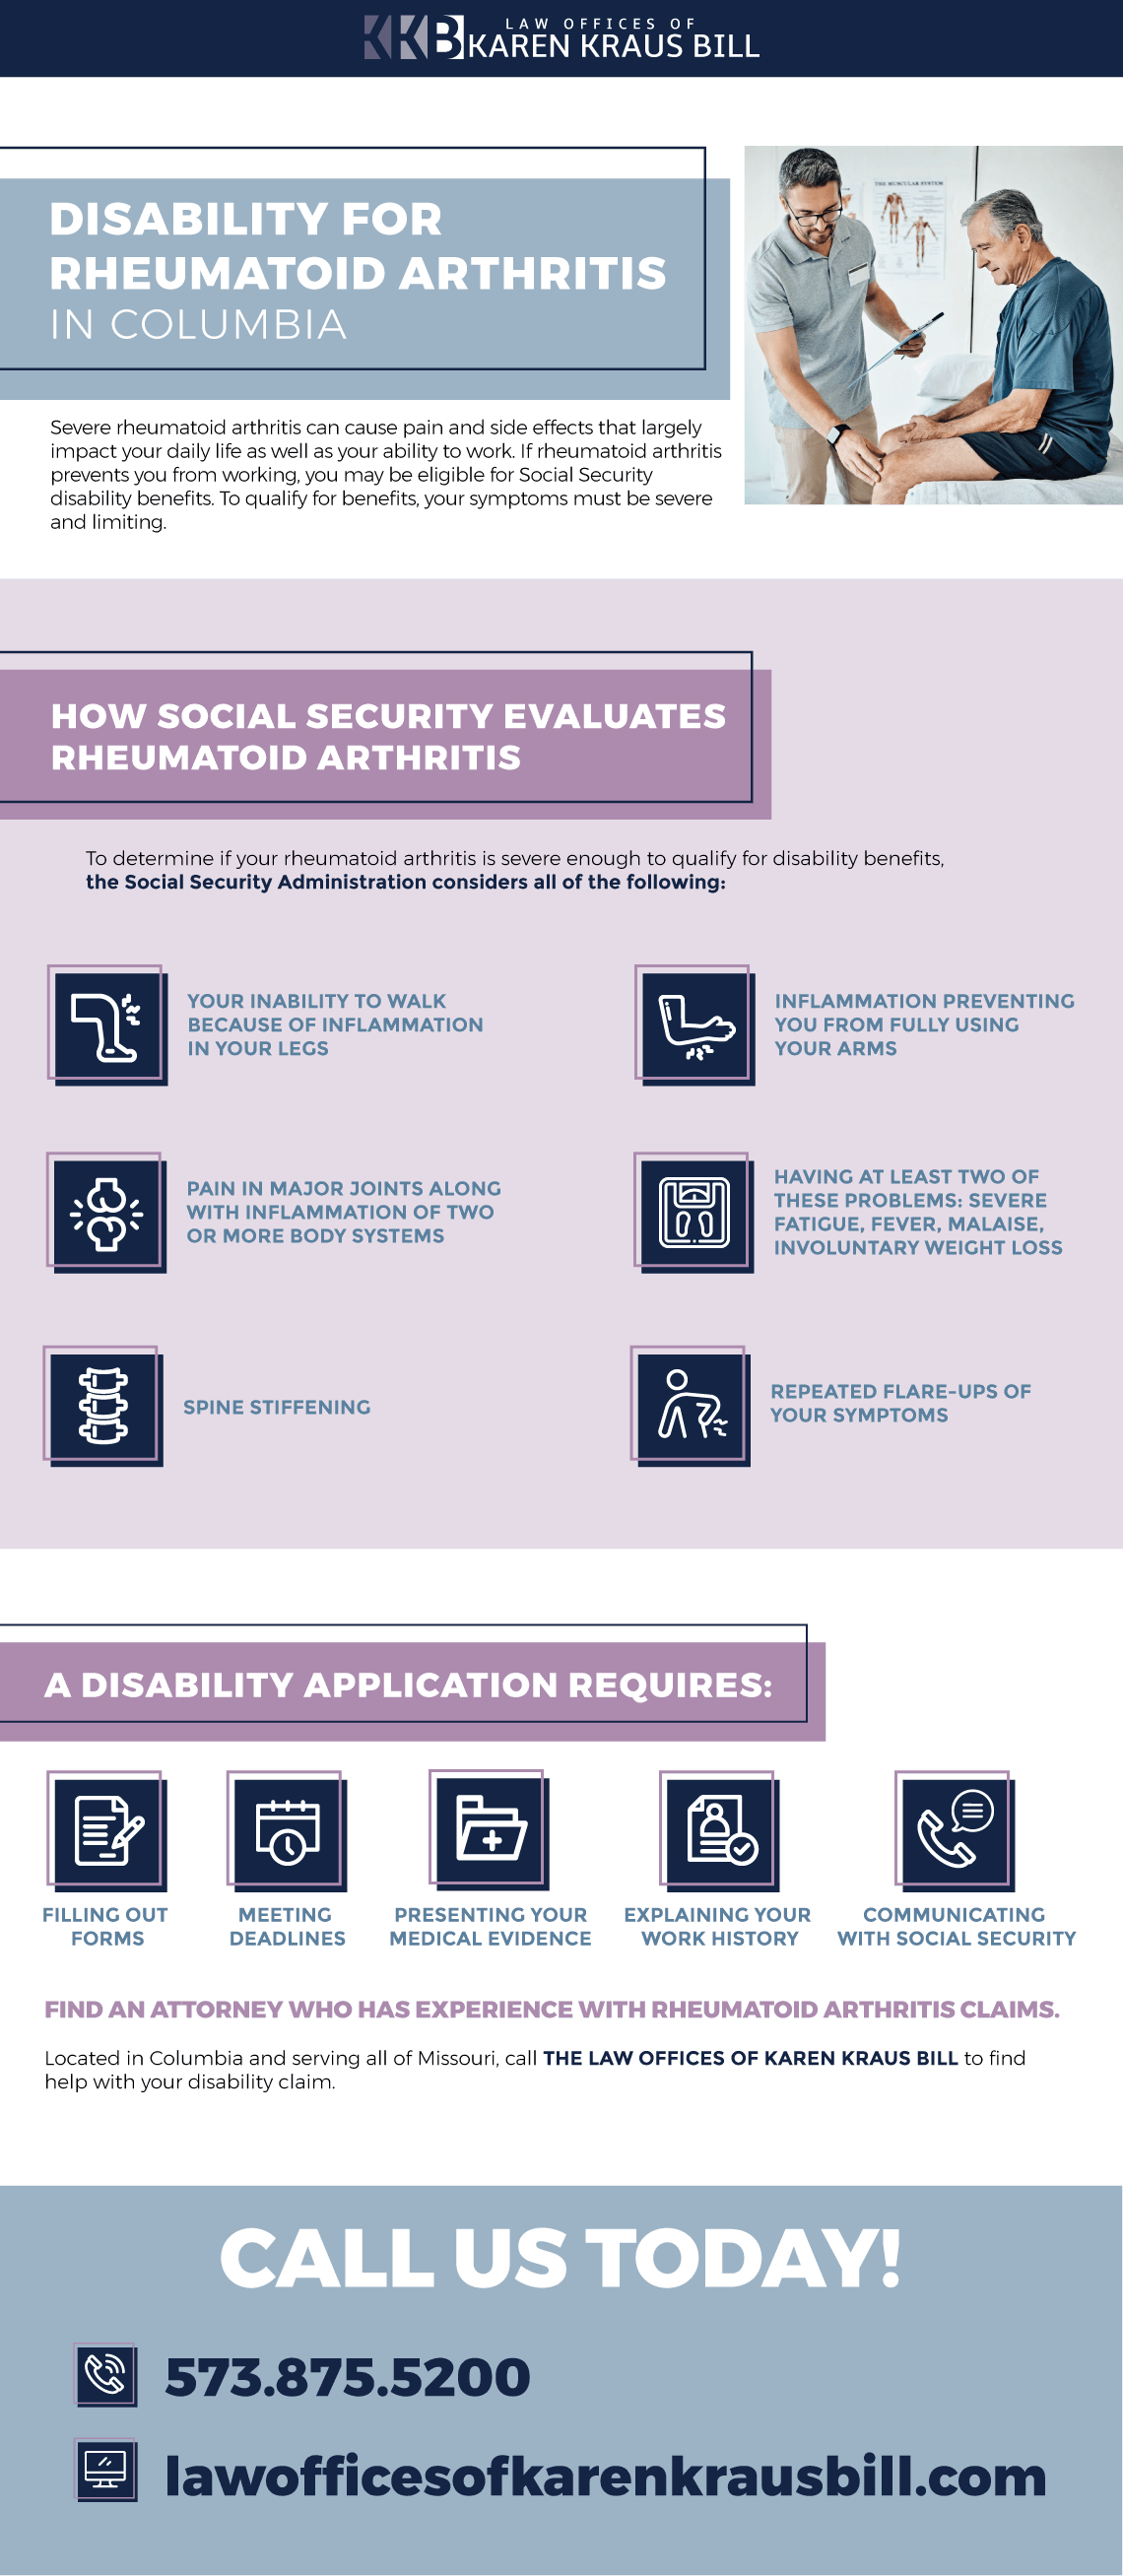 Disability for Rheumatoid Arthritis in Columbia Infographic